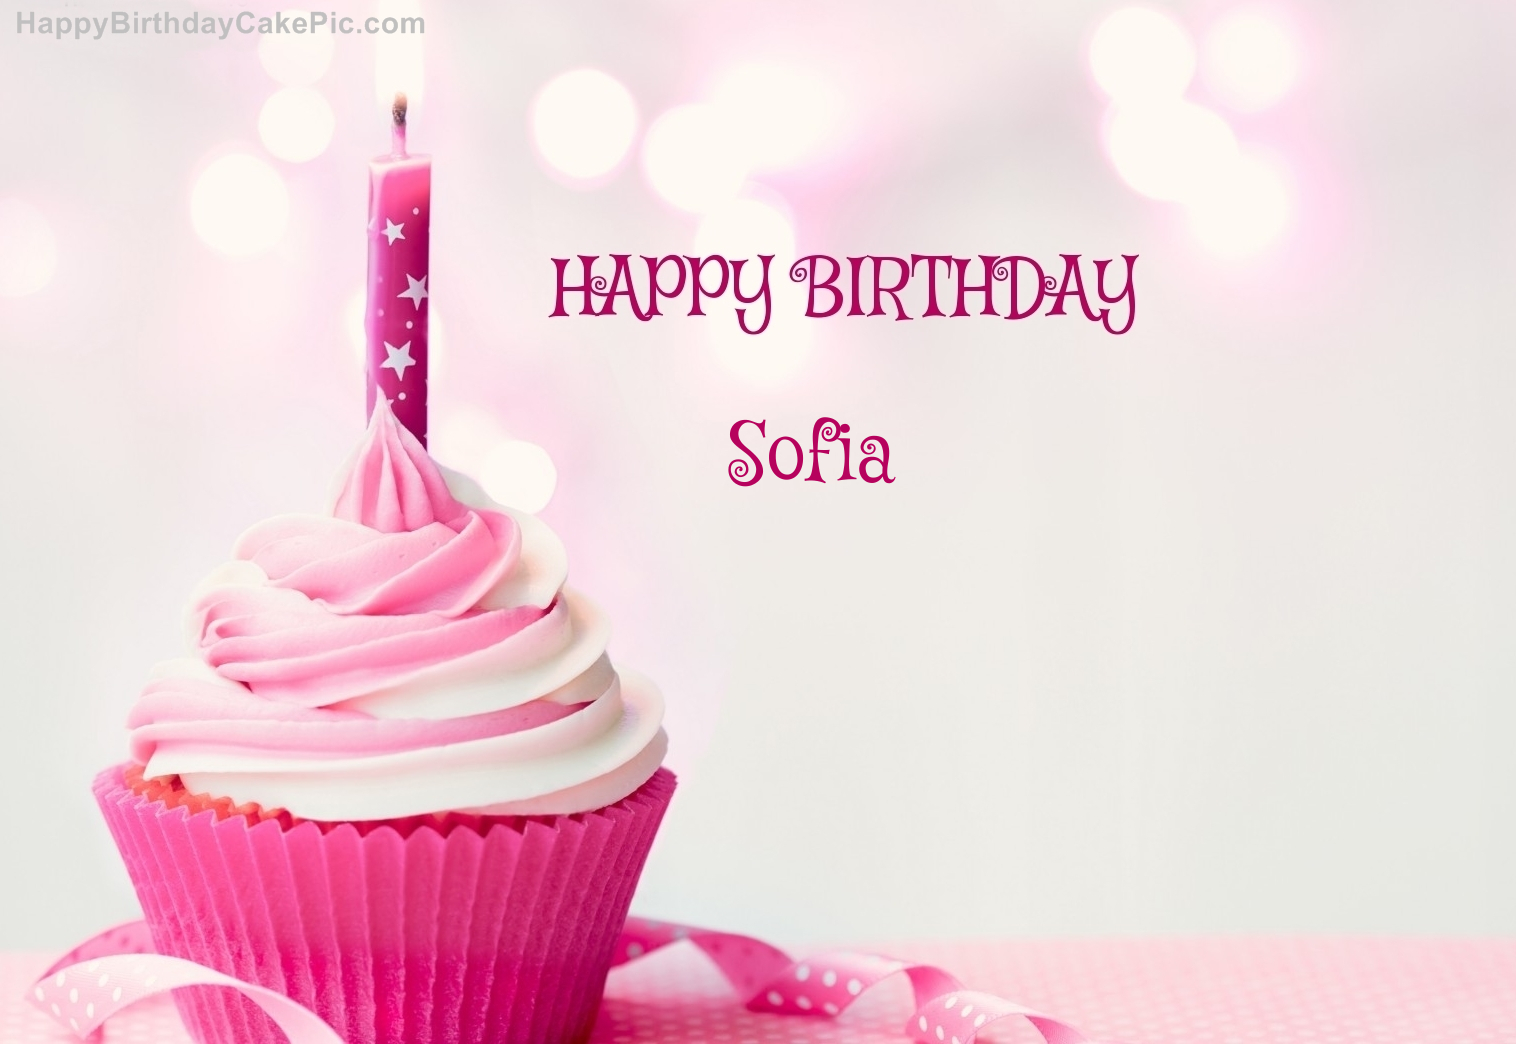 Happy Birthday Cupcake Candle Pink Cake For Sofia